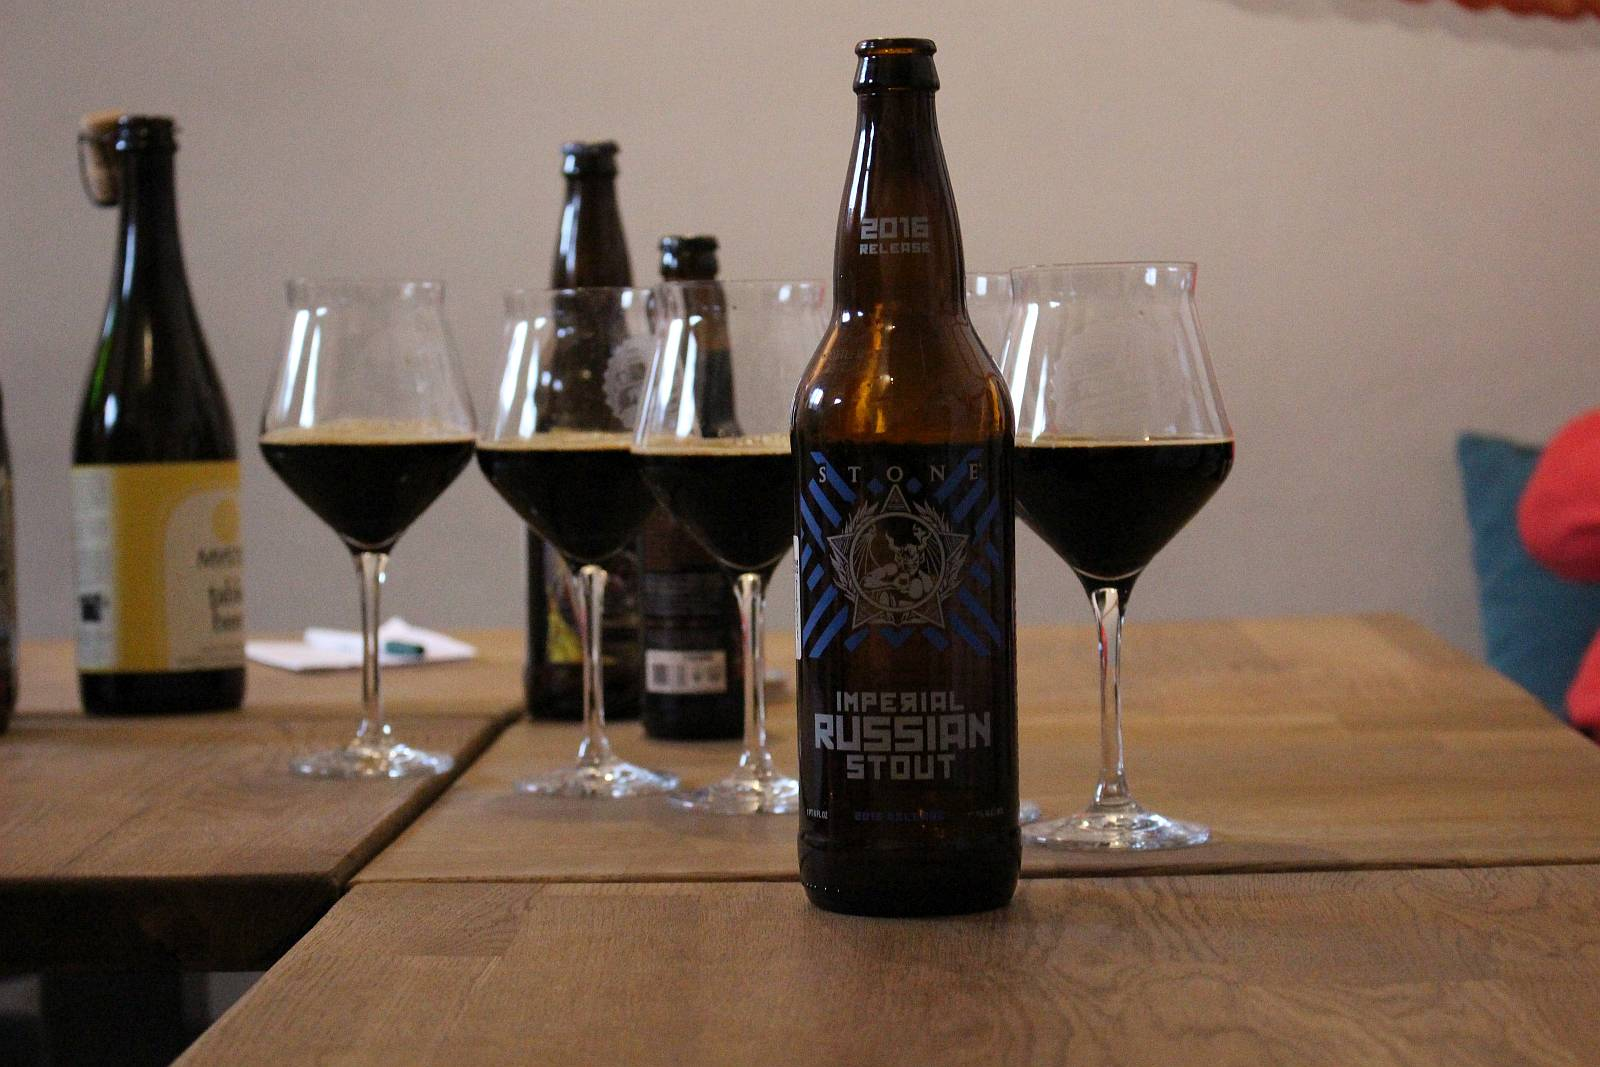 stone-imperial-stout-2016